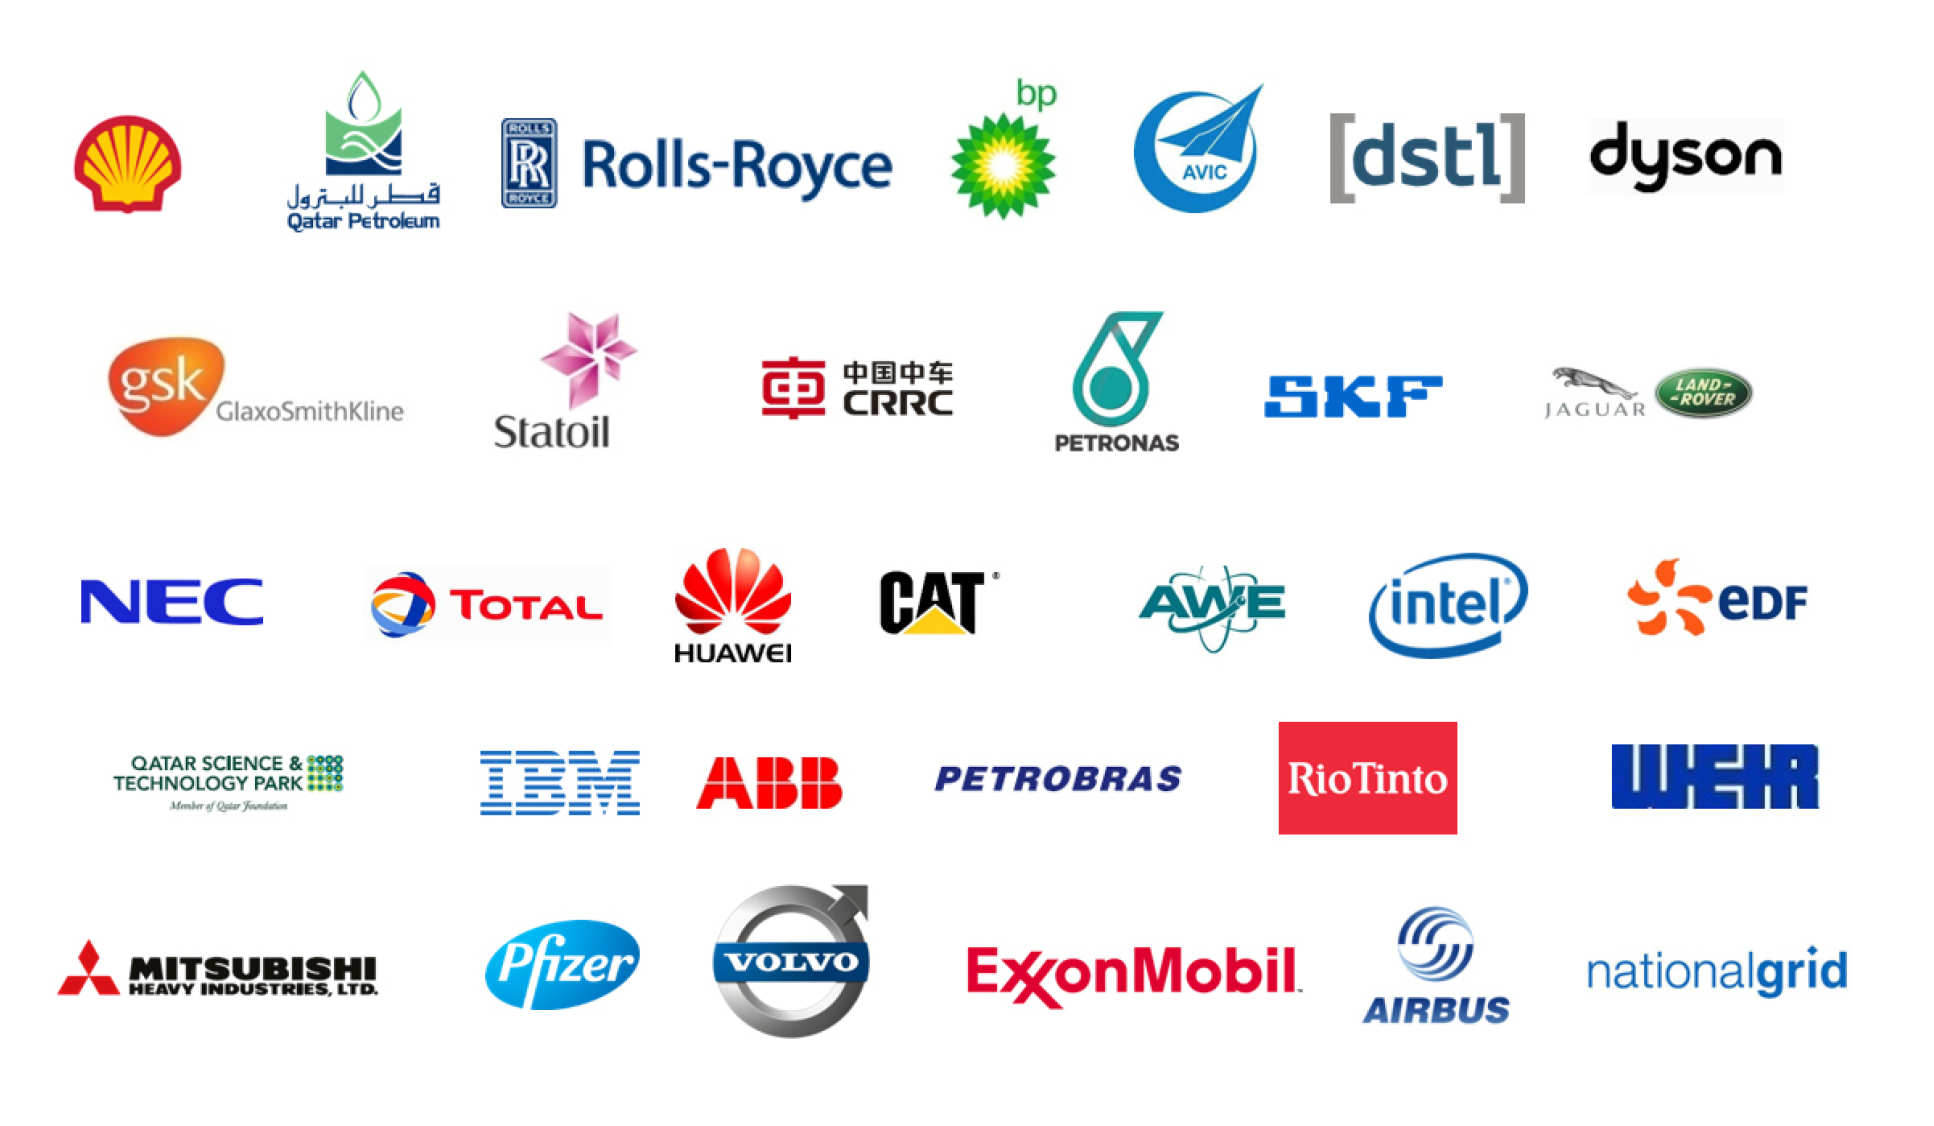 Logos of some of our funders: shell, BG group, BP, Rolls-Royce, UniCat, AVIC, Rio Tinto, Dyson, GSK, Statoil, Petronas, Total, CSR, SKF, NEC, UK Power Networks, IBM, CAT, Laing O'Rourke, Huawei, Intel, EDF Energy, ABB, Petrobras, National Grid, Airbus